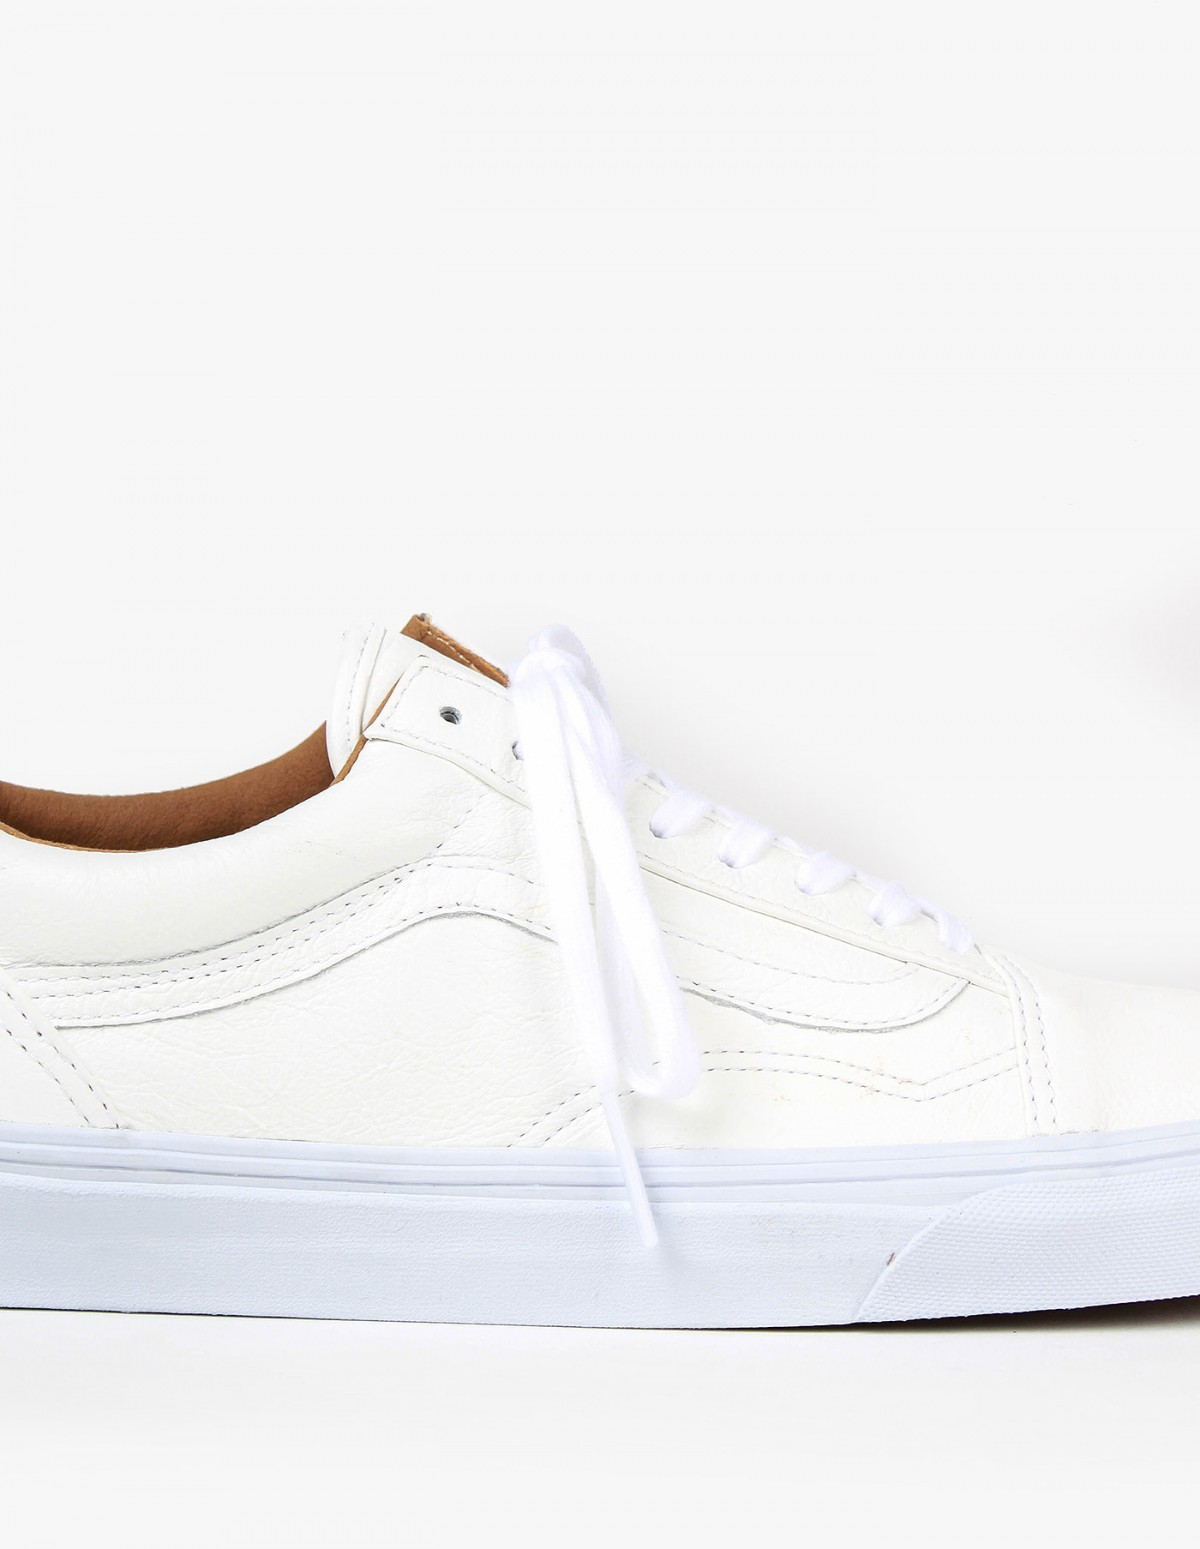 Vans Old Skool in White Premium Leather